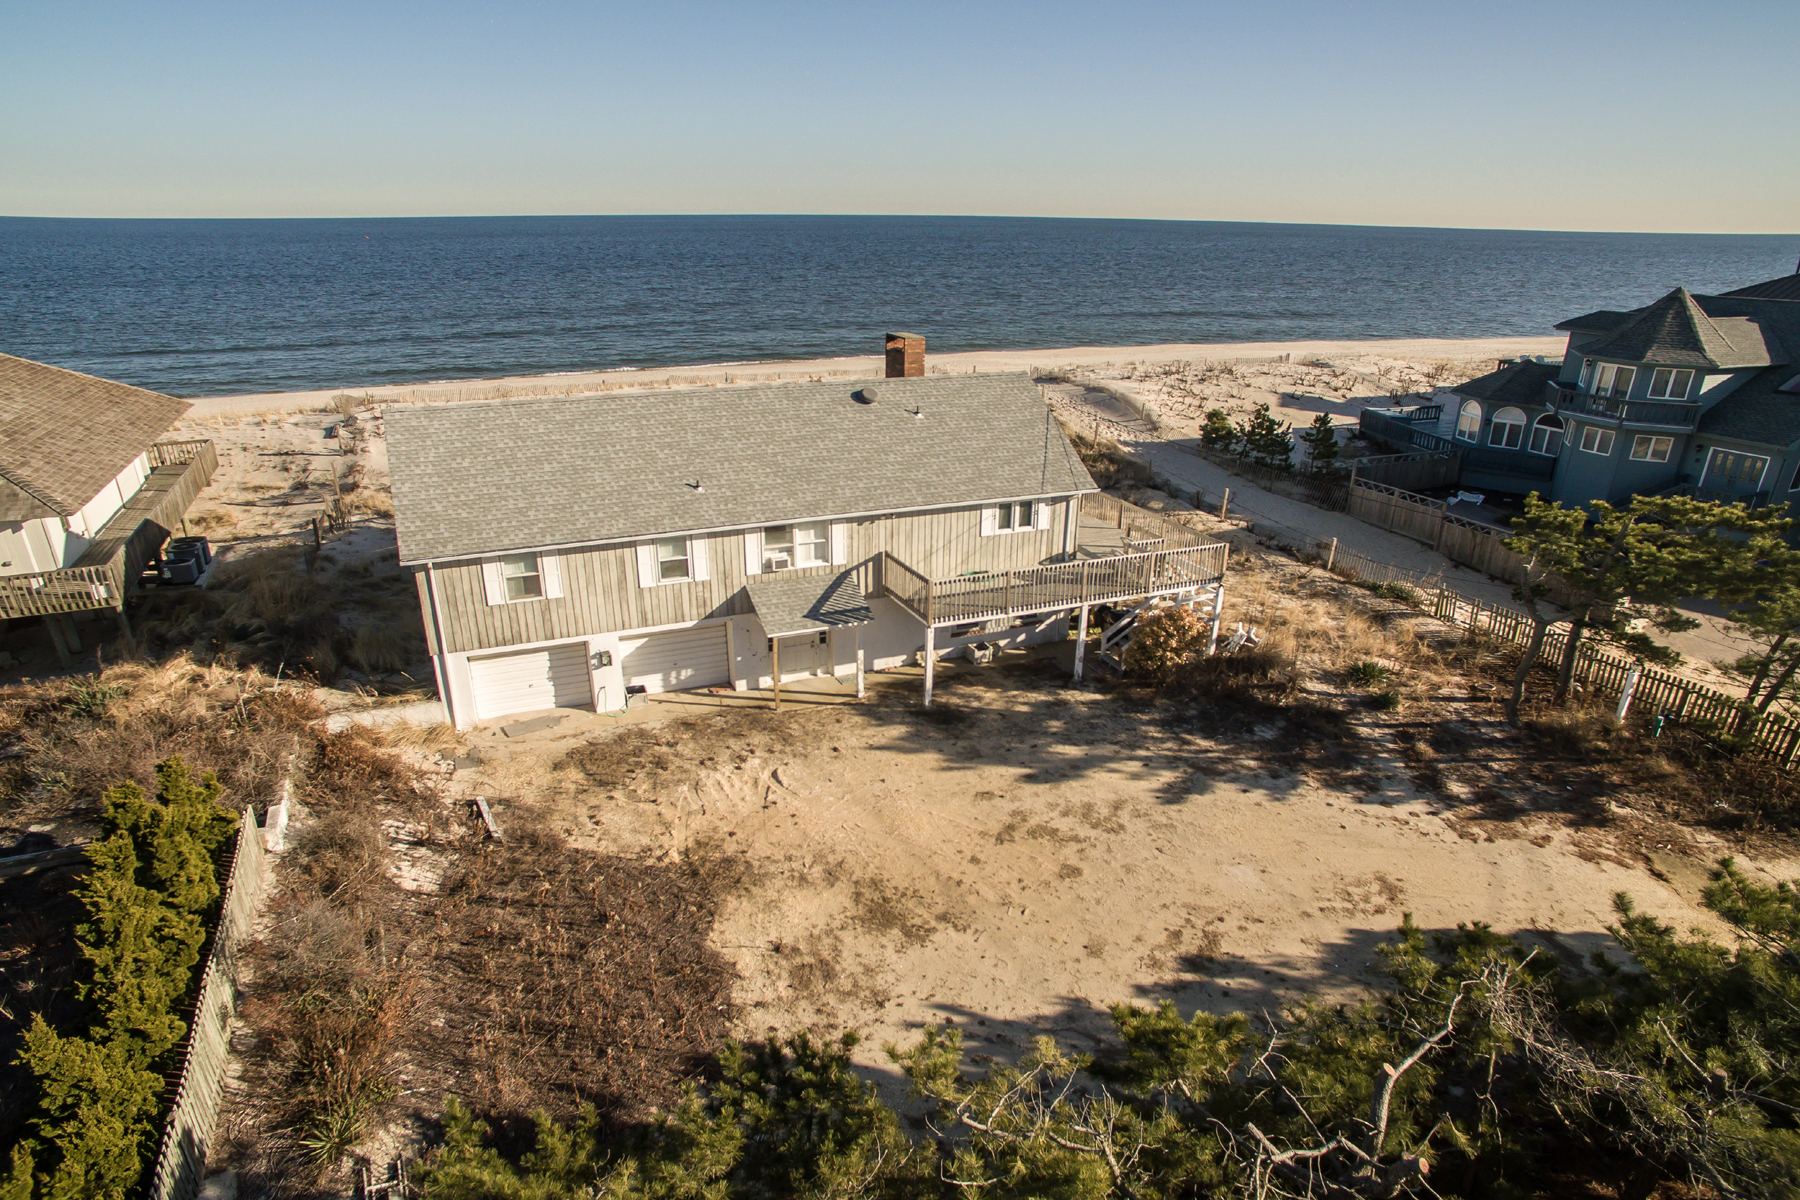 Single Family Home for Sale at Spectacular Over-sized Oceanfront Property 101 Faber Lane, Mantoloking, New Jersey 08738 United States